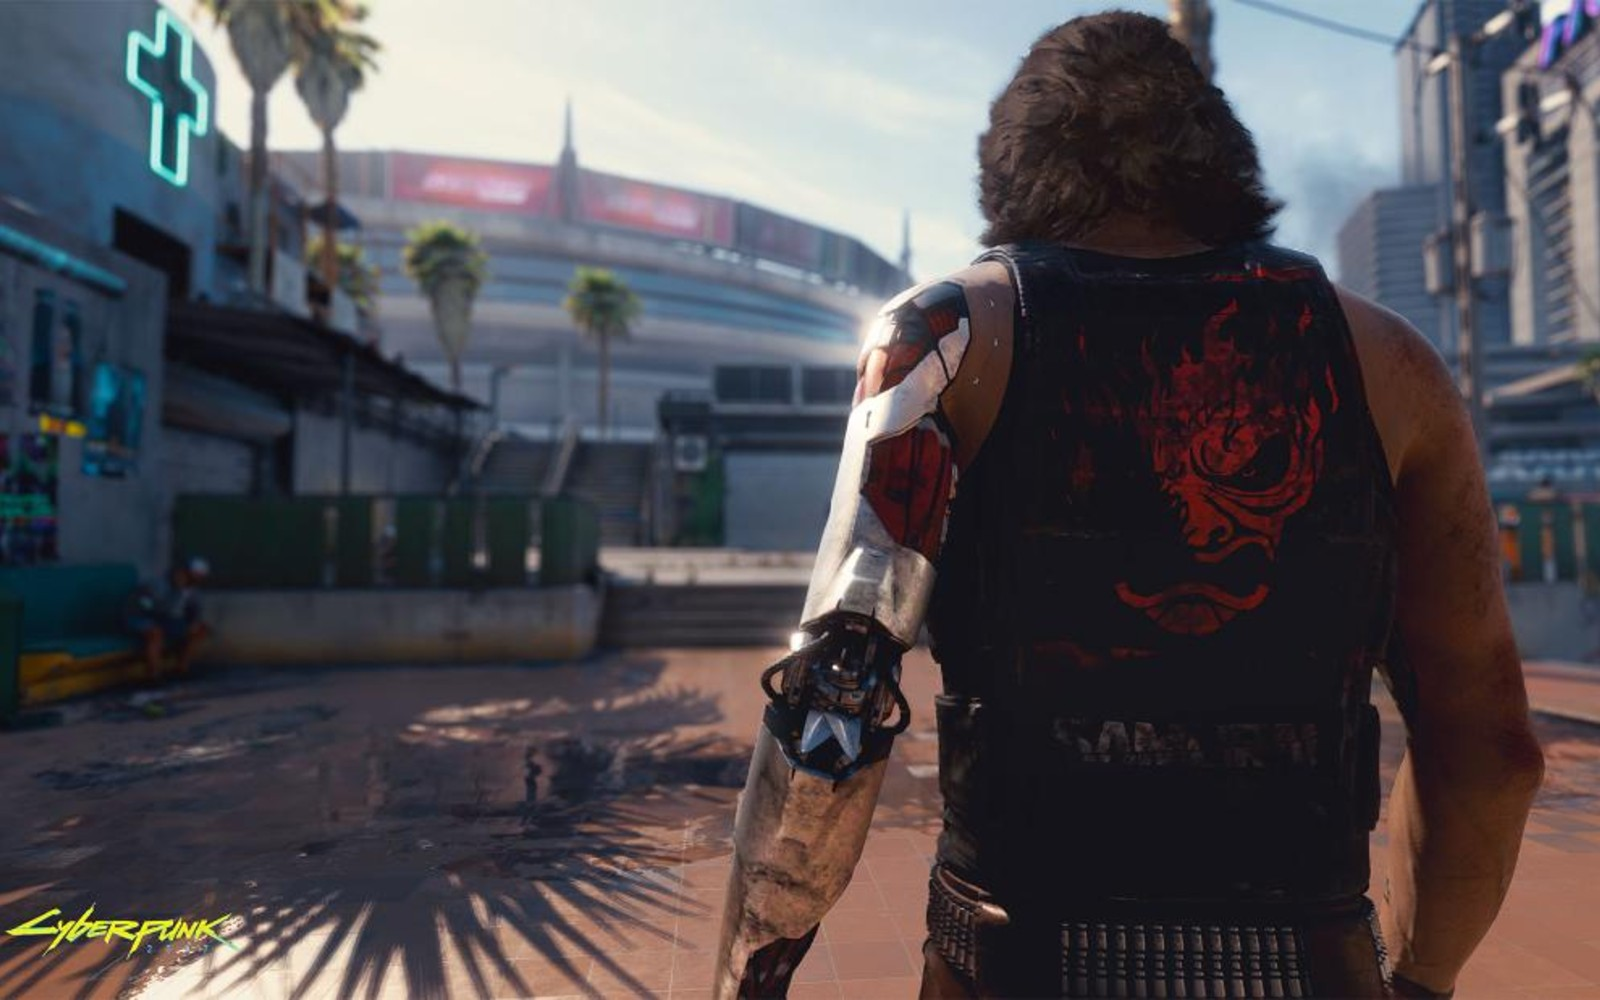 Microsoft will end expanded 'Cyberpunk 2077' refund policy in July